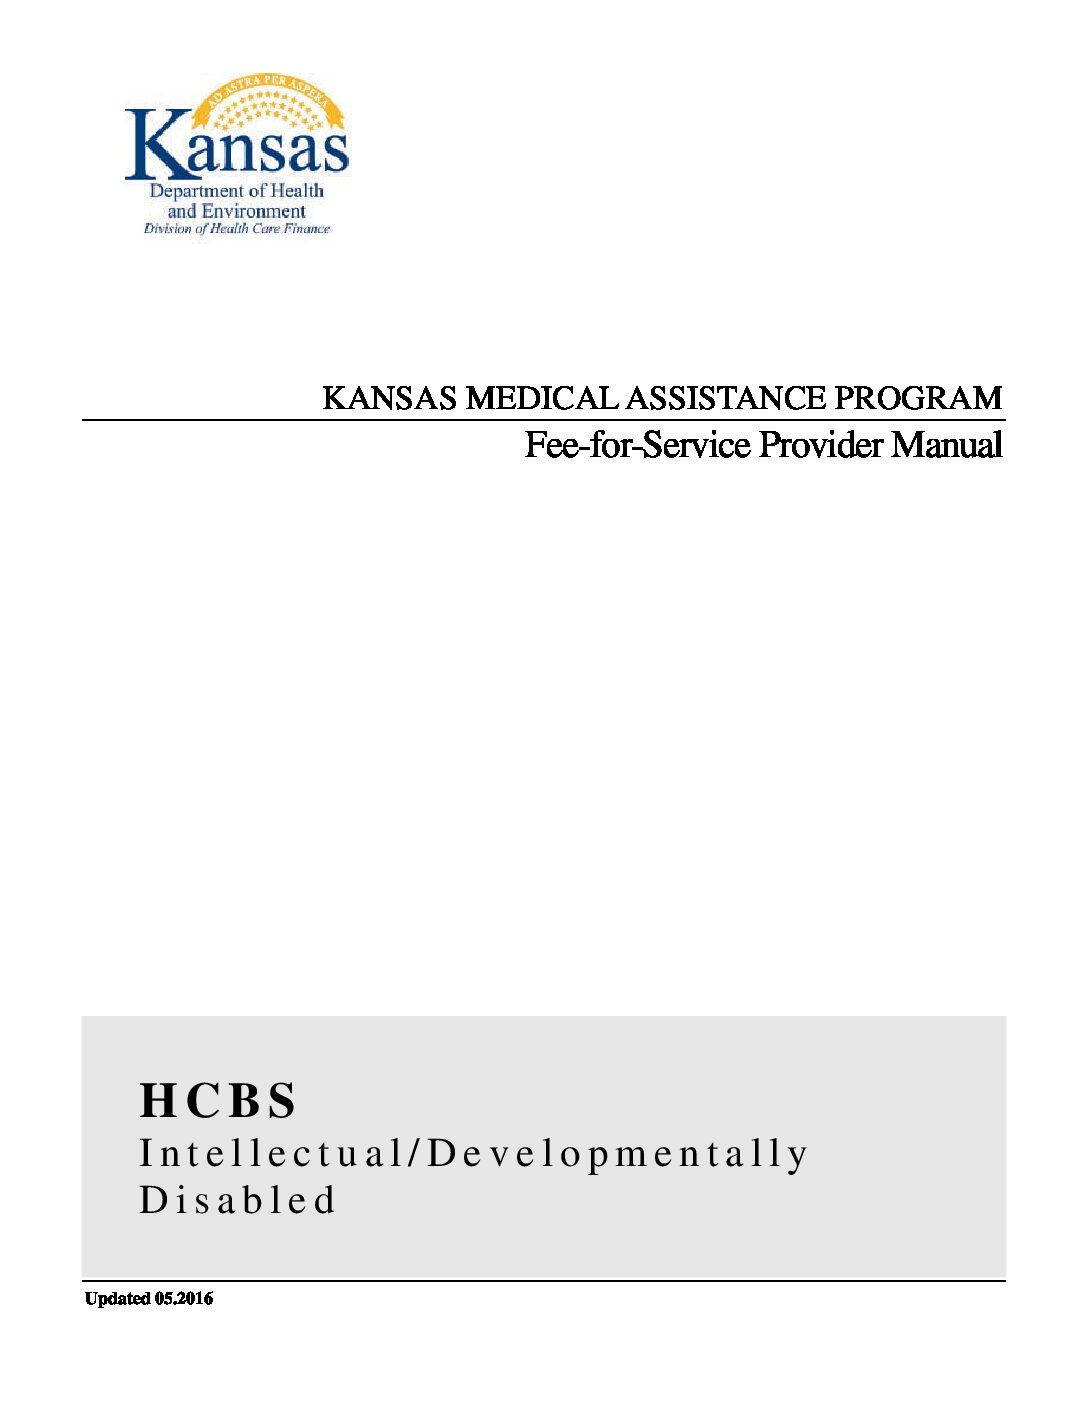 Kansas I/DD Medical Assistance Program: Fee-for-Service Provider Manual